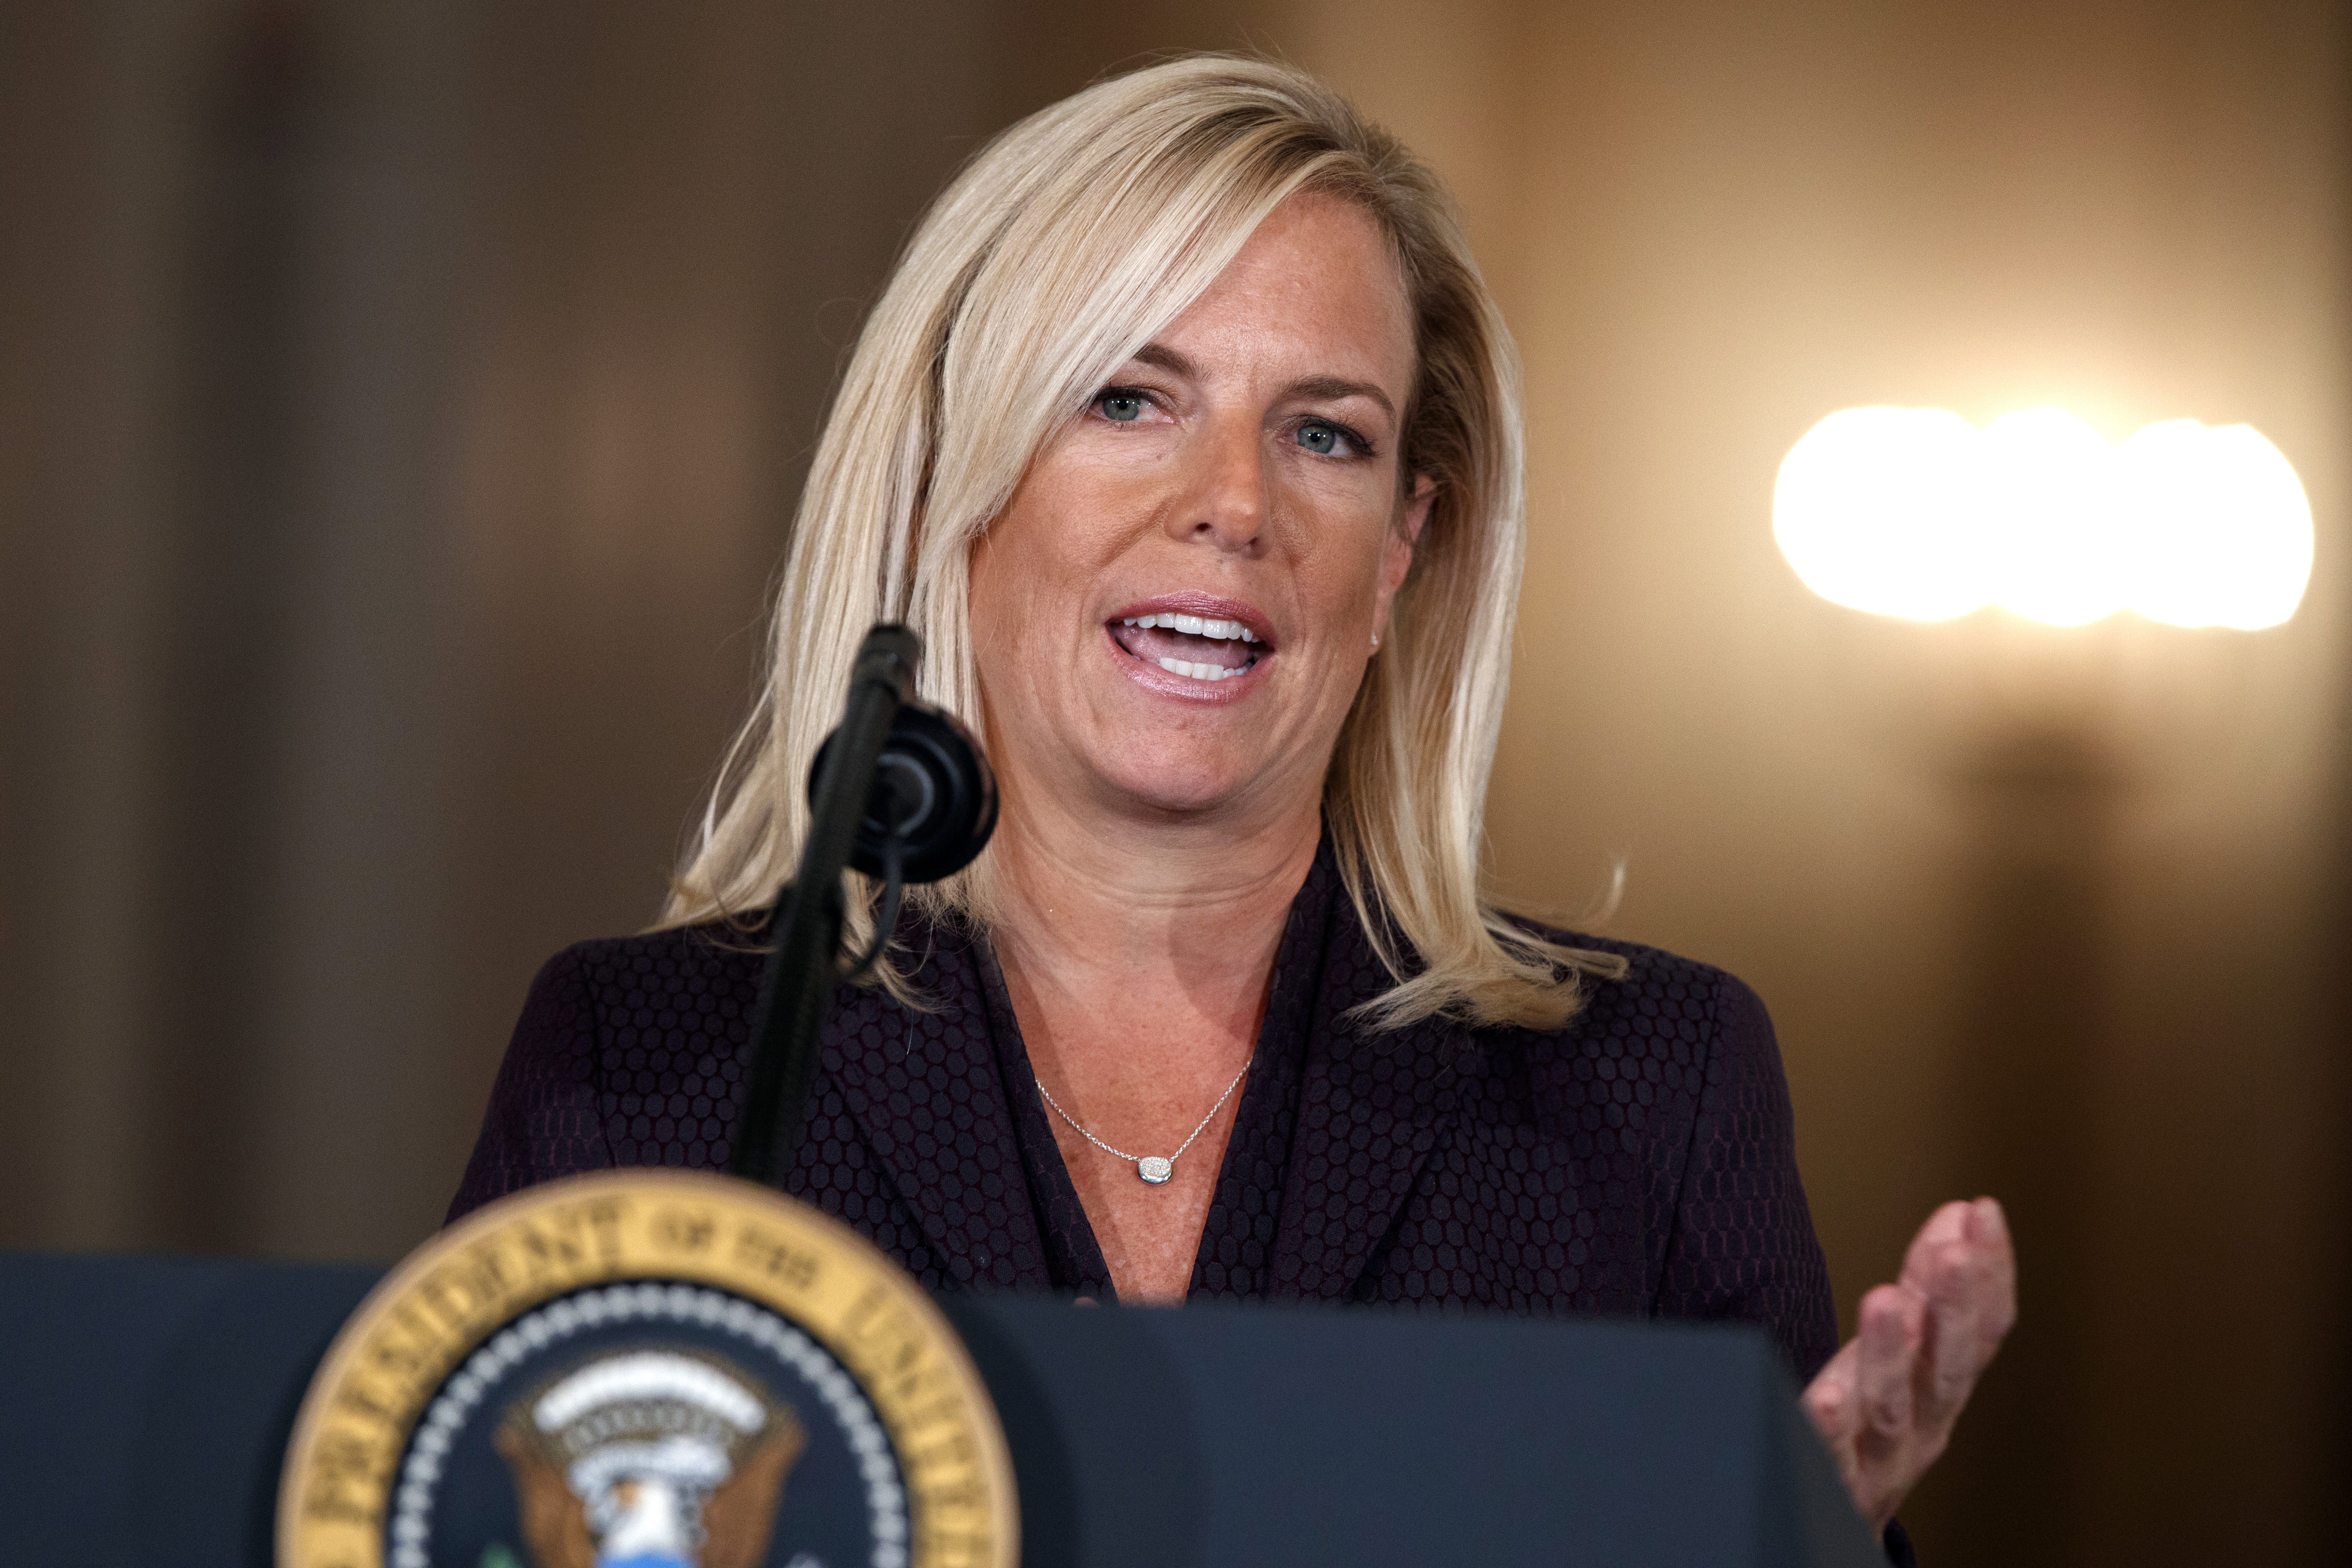 Kirstjen Nielsen, the secretary of Homeland Security, speaks during an event in the East Room of the White House, Thursday, Oct. 12, 2017, in Washington. (Evan Vucci/AP)